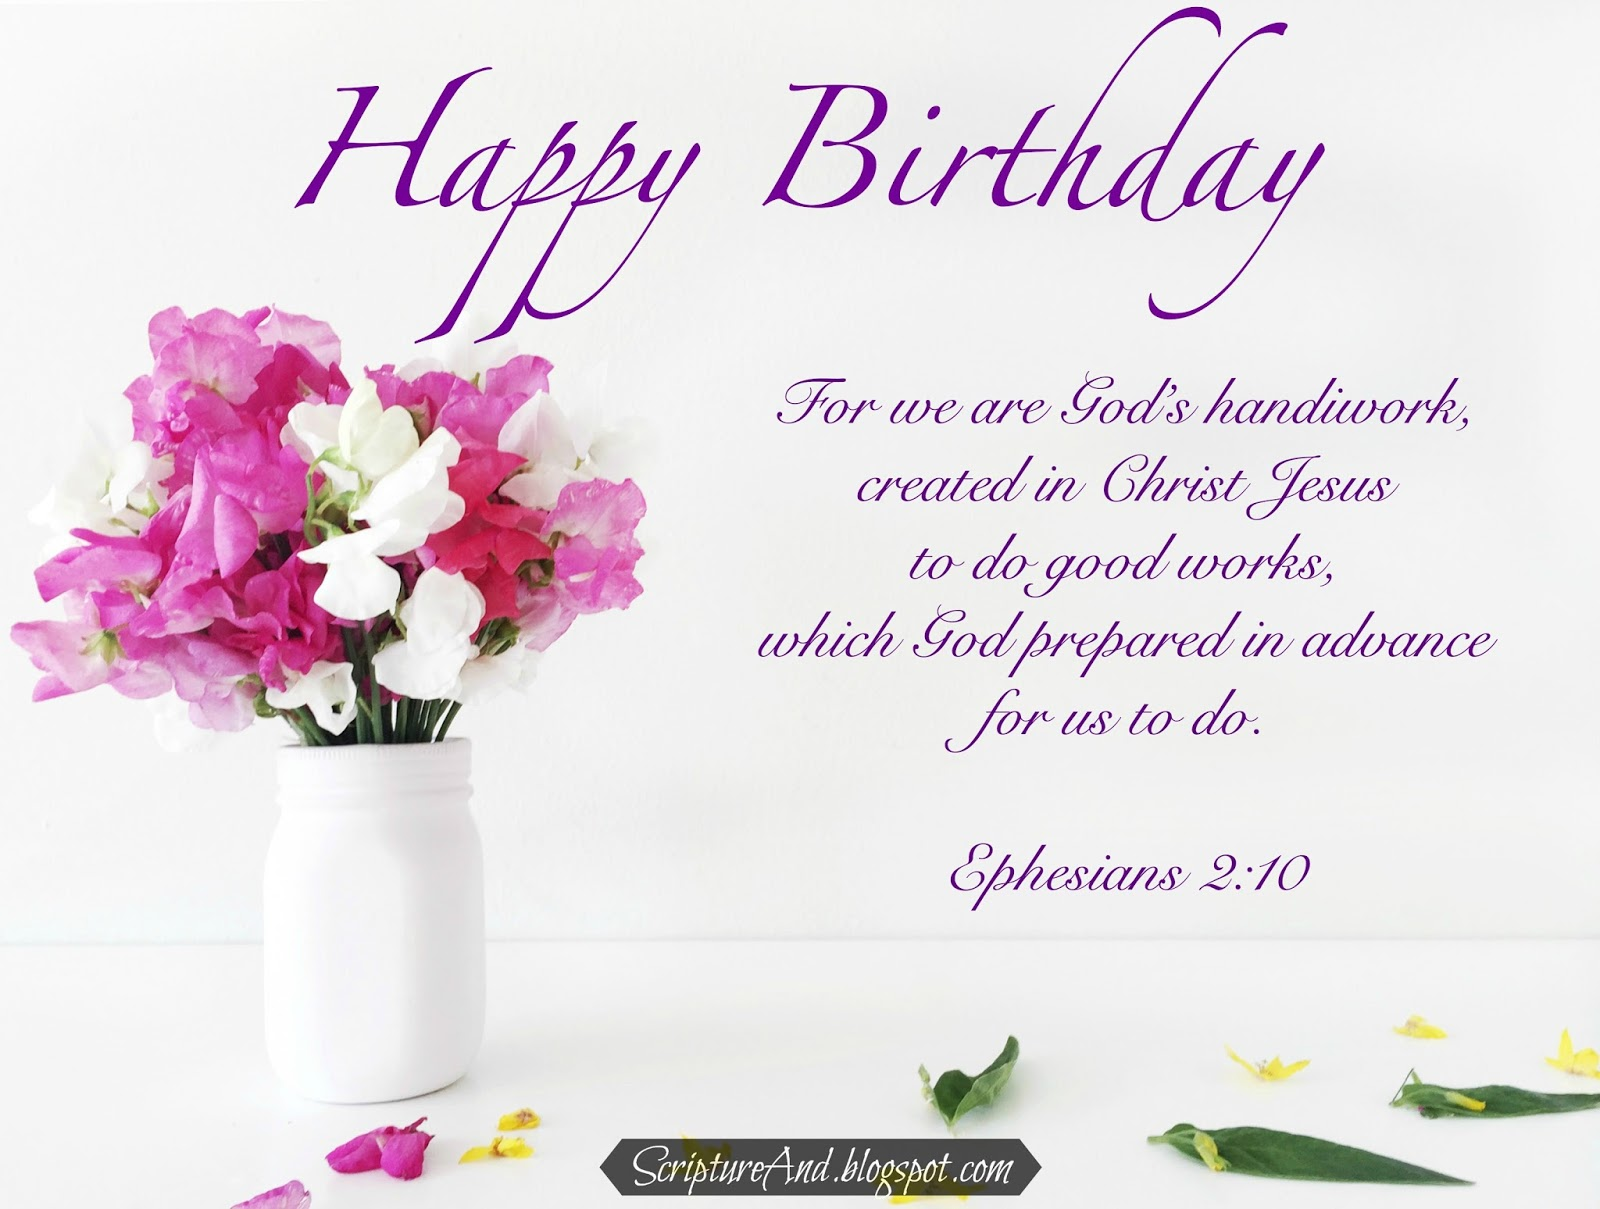 Amazing Scripture And Free Birthday Images With Bible Verses Jpg 1600x1209 Wishes